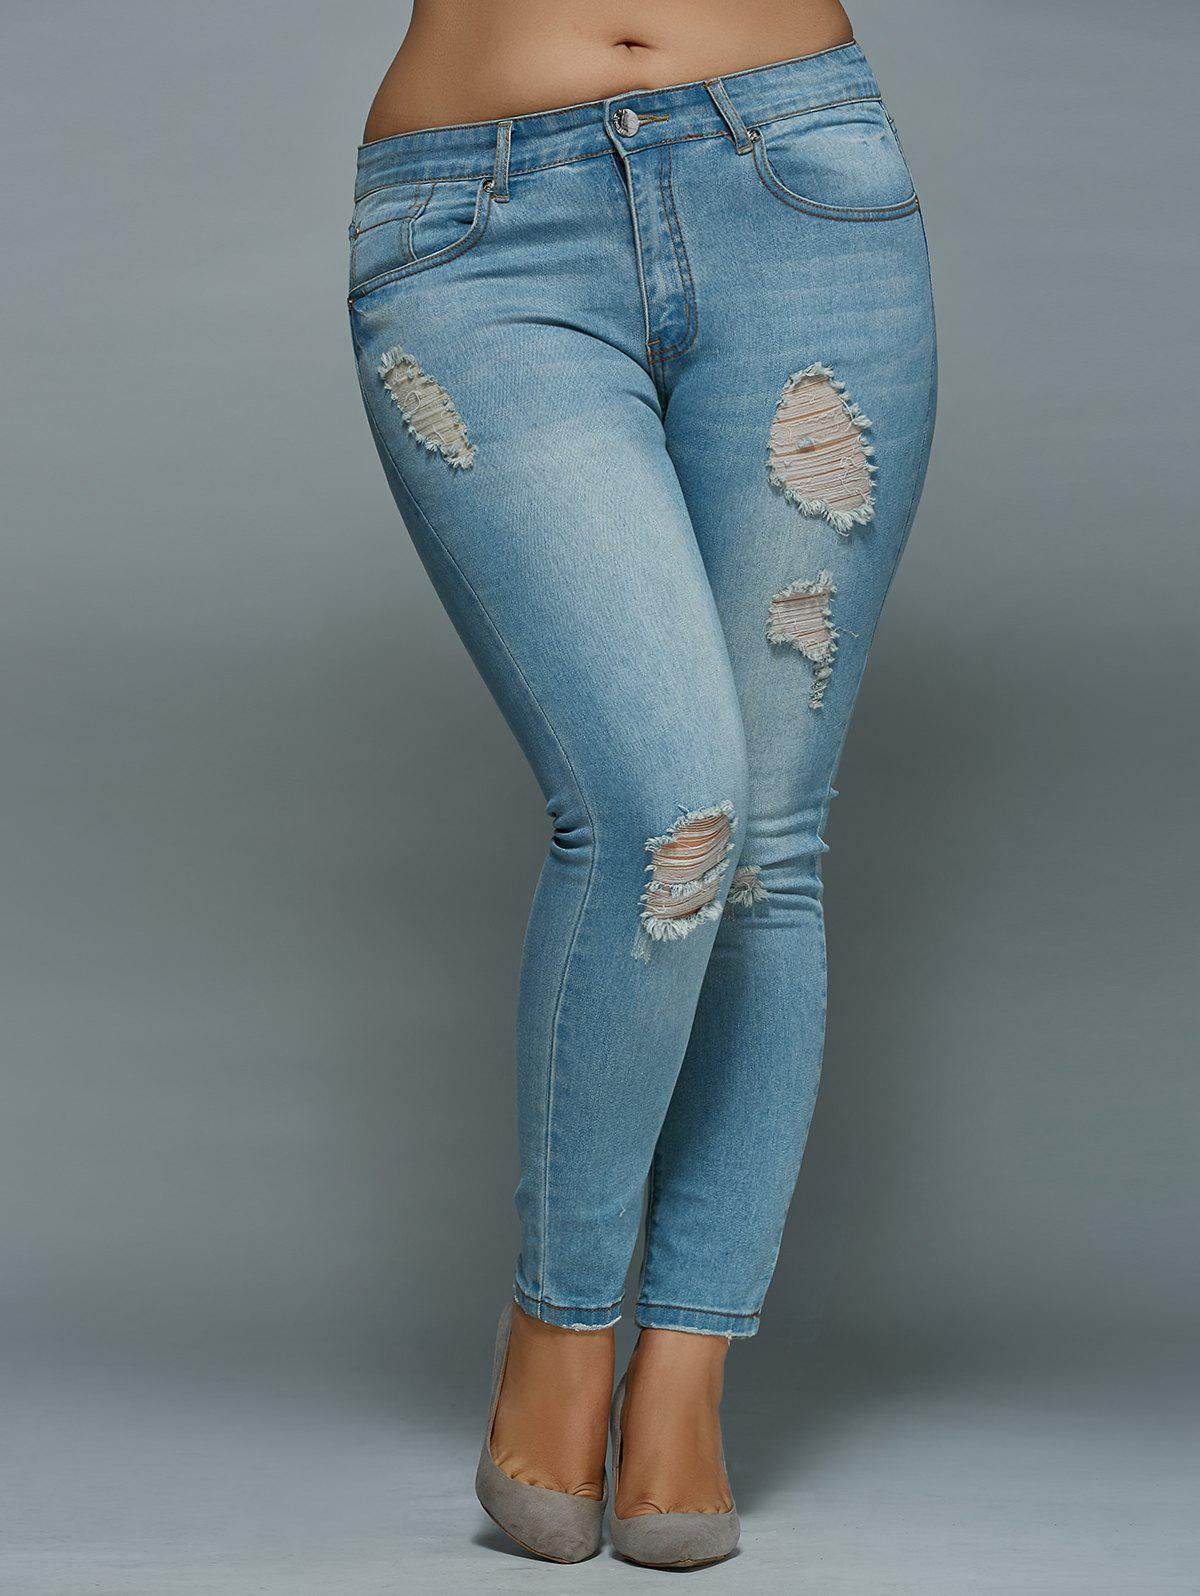 Shop Mid Waisted Skinny Plus Size Distressed Jeans